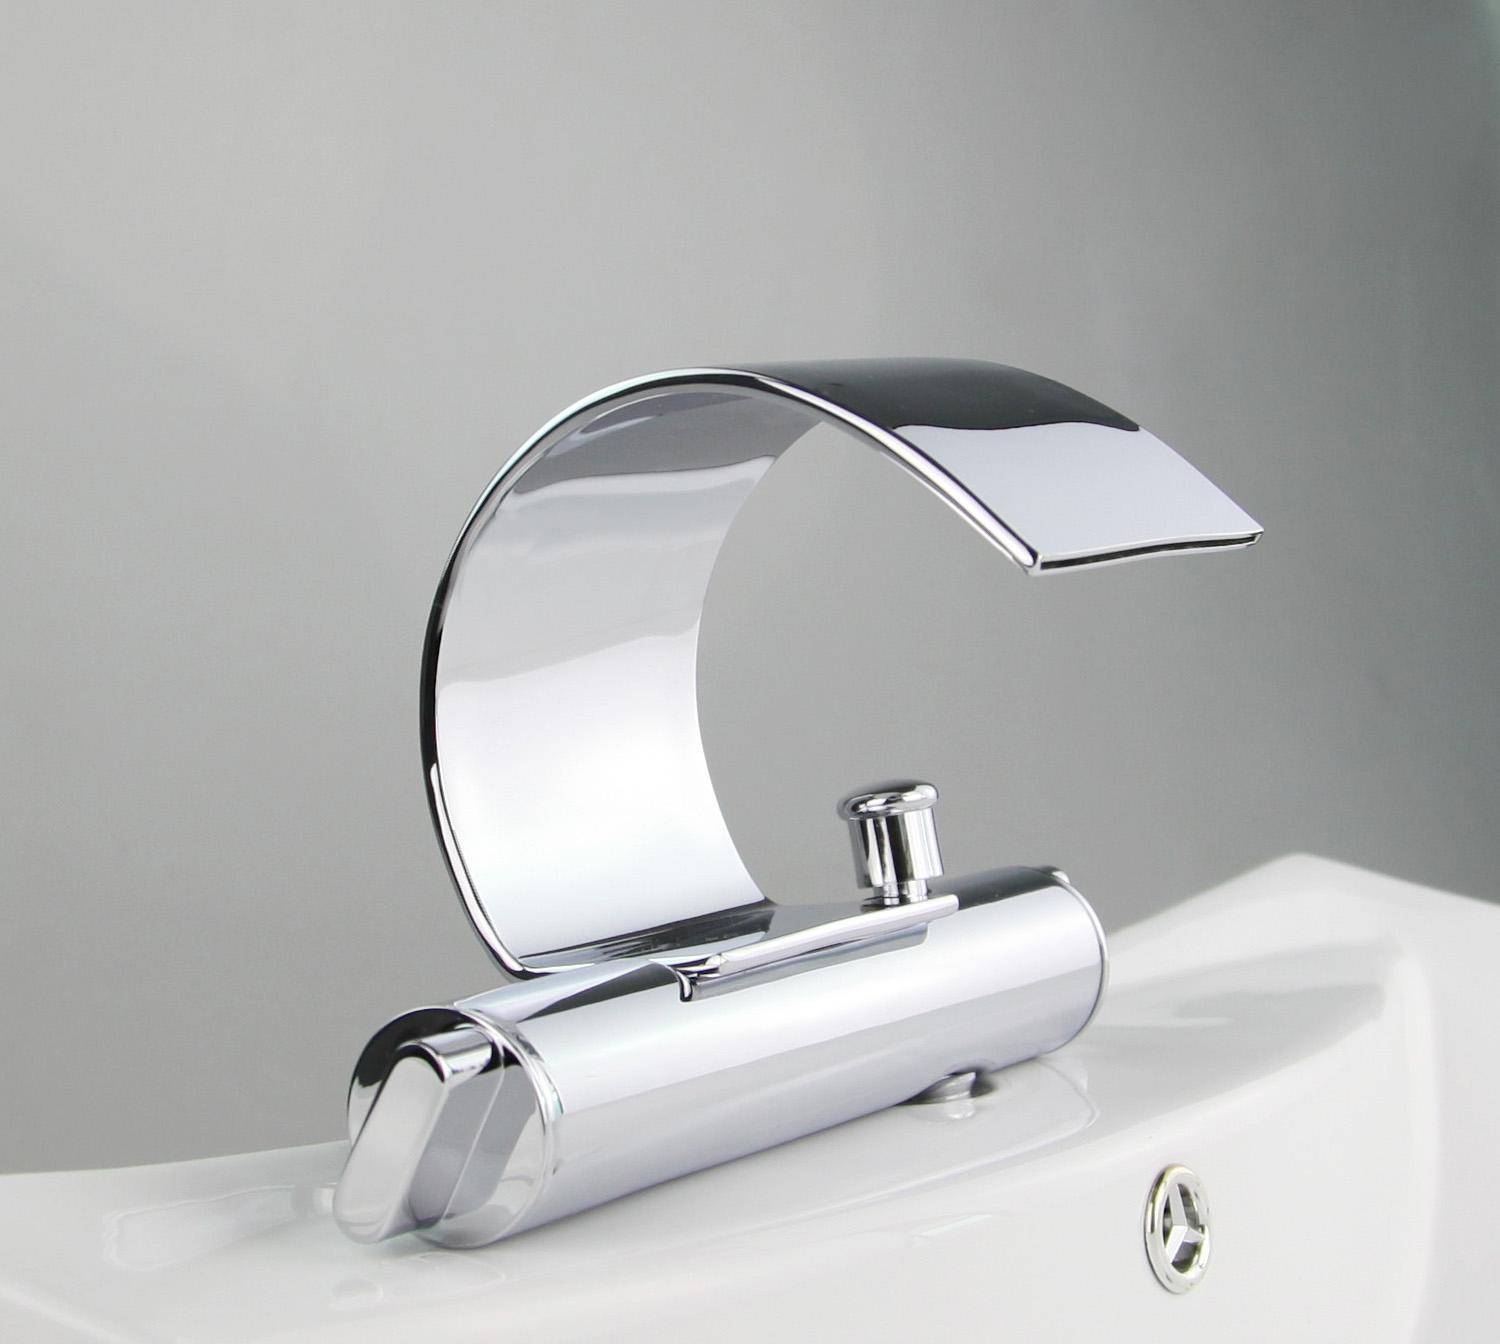 brand new brass chrome basin bathroom faucet sink mixter tap FF0004. 2018 Brand New Brass Chrome Basin Bathroom Faucet Sink Mixter Tap